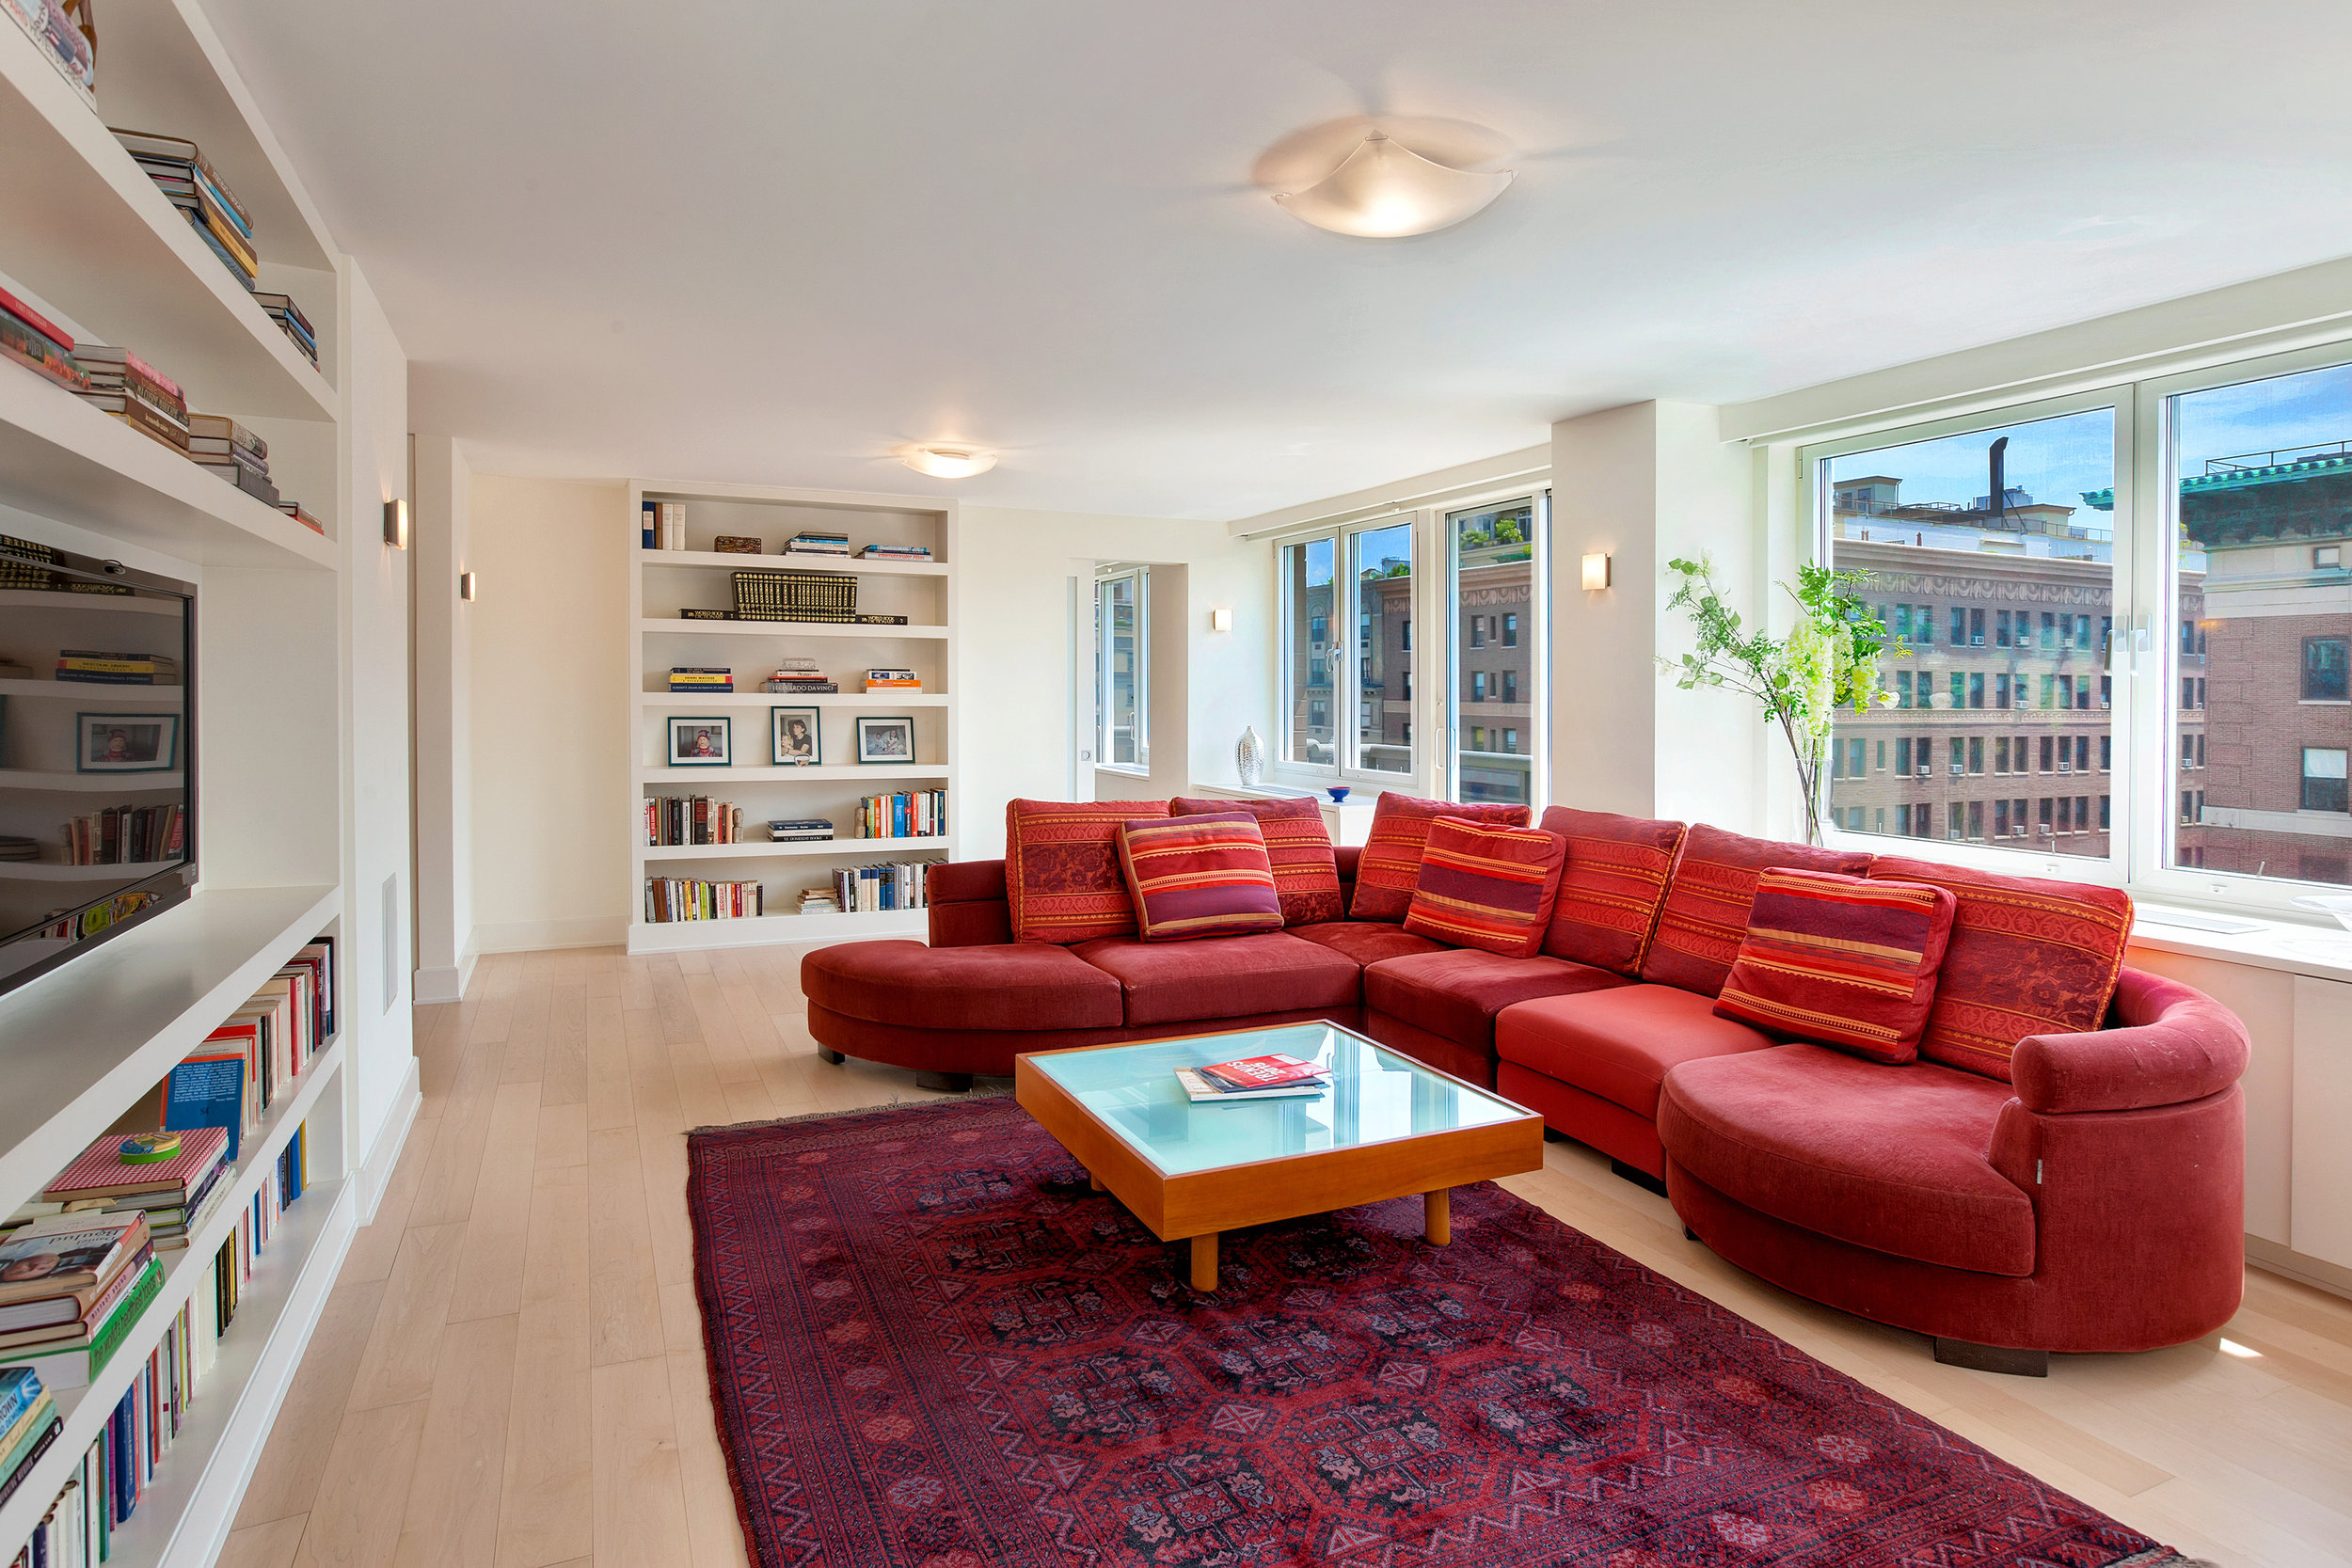 250West90thStreet17K_Dylan_Hildreth-Hoffman_DouglasElliman_Photography_28828821_high_res.jpg